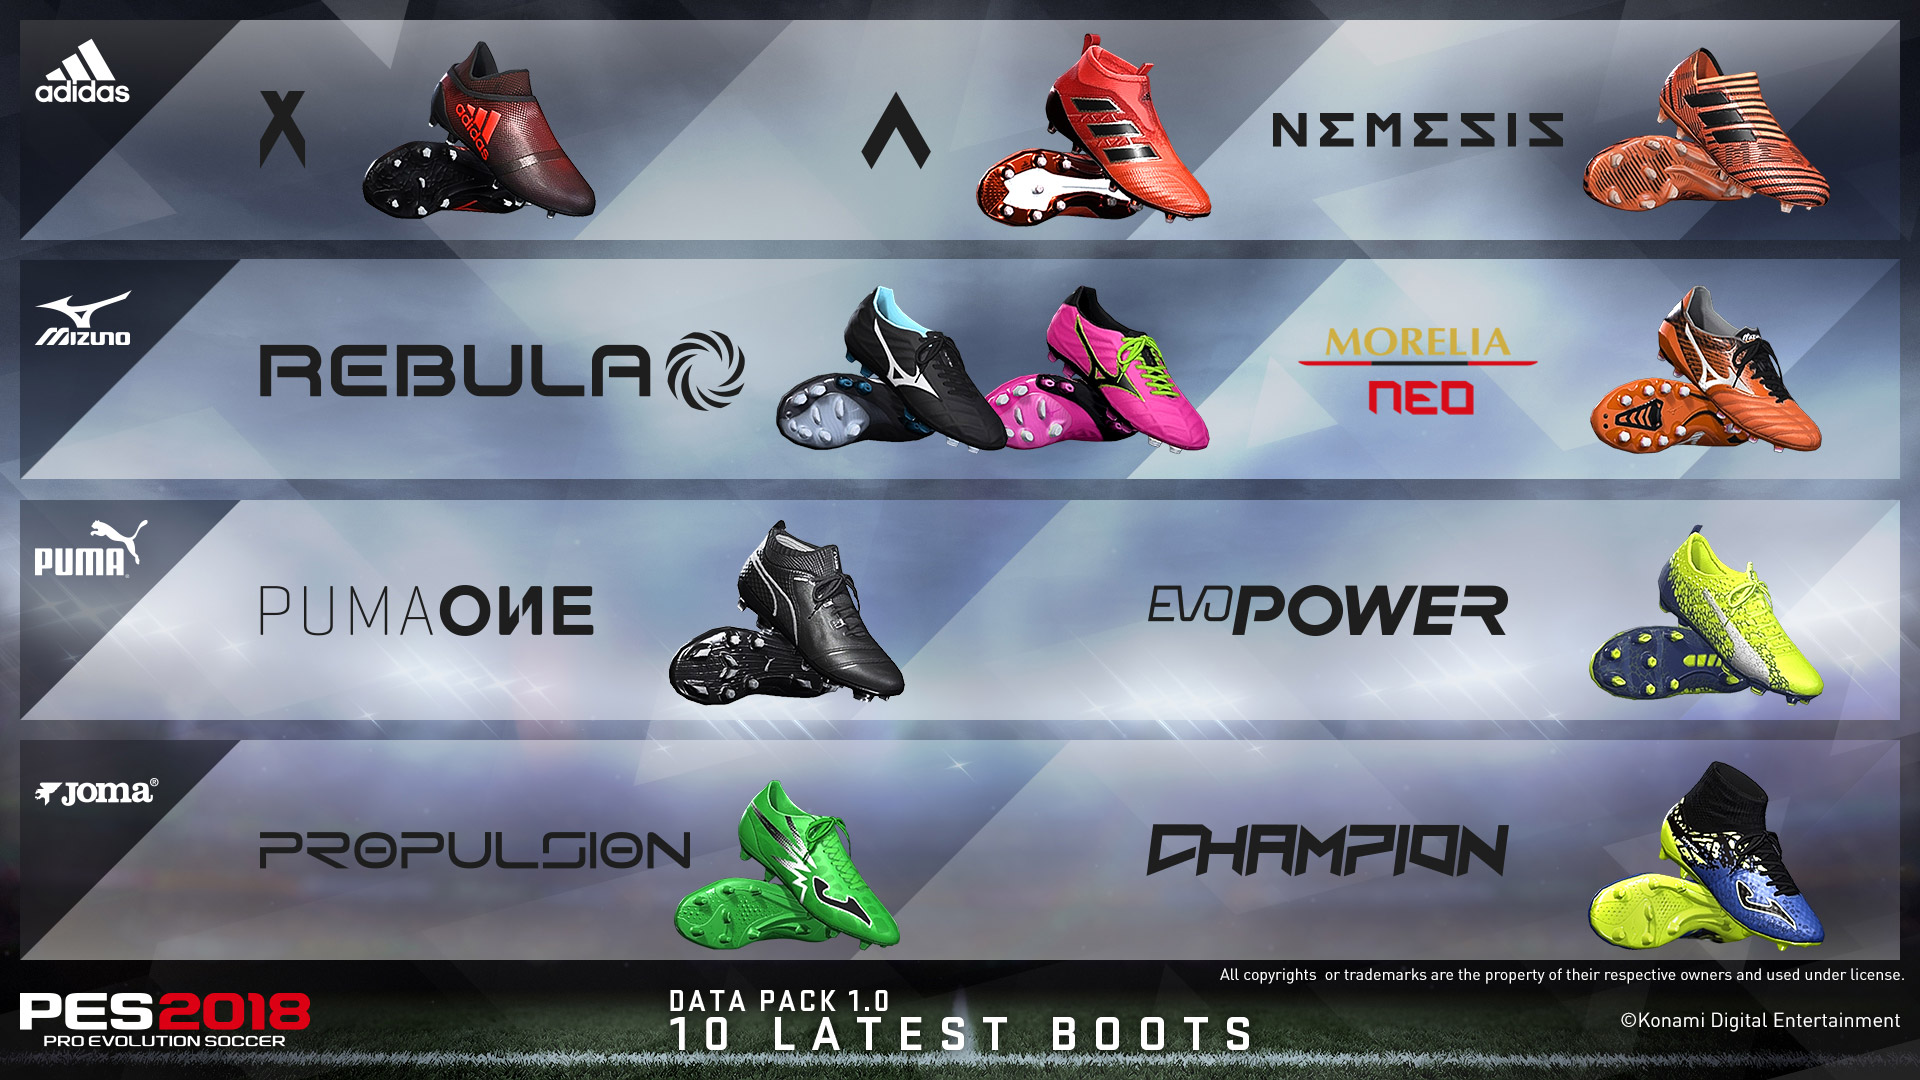 [BOOTS] IG boots for PES 2018 - Page 4 - PESGaming Forums